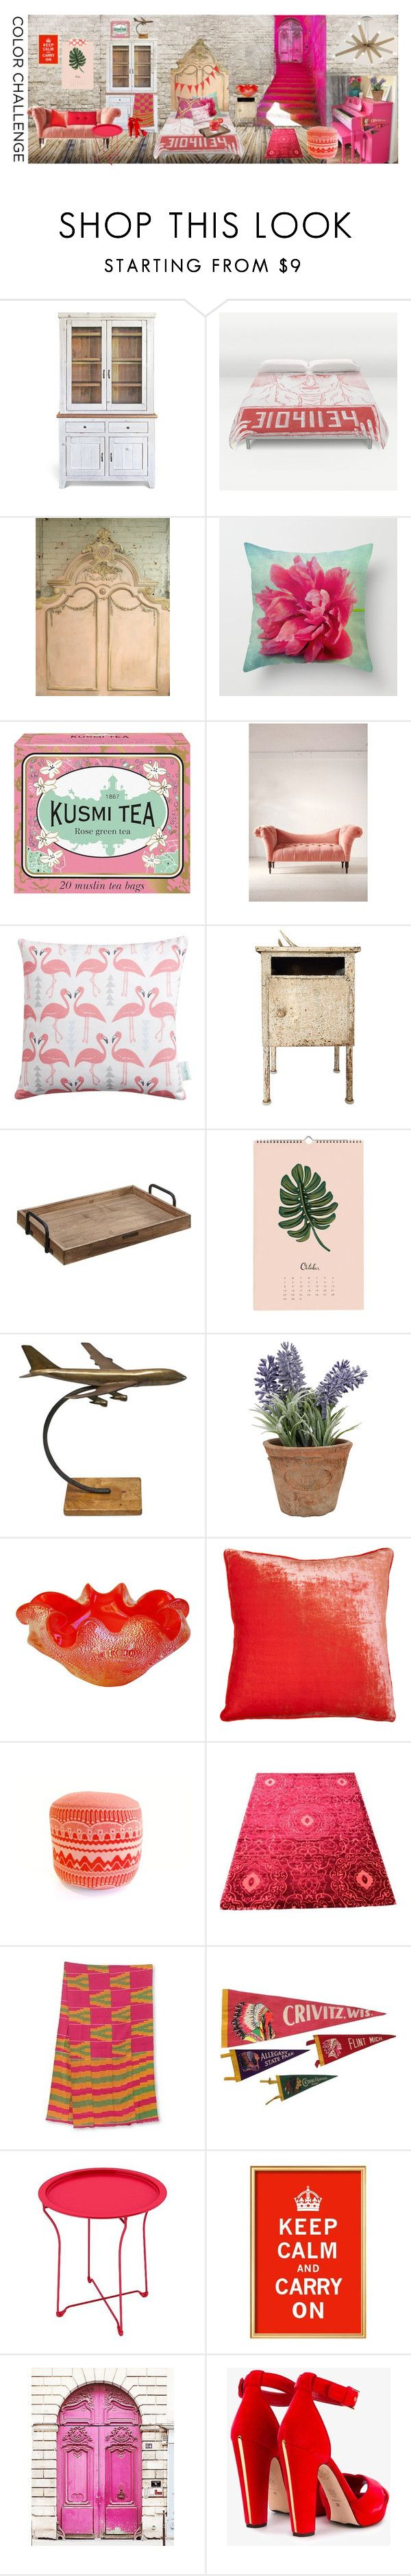 """My colorful roomie"" by les1 ❤ liked on Polyvore featuring interior, interiors, interior design, home, home decor, interior decorating, Benjamin Moore, Kusmi Tea, Urban Outfitters and Rosa & Clara Designs"